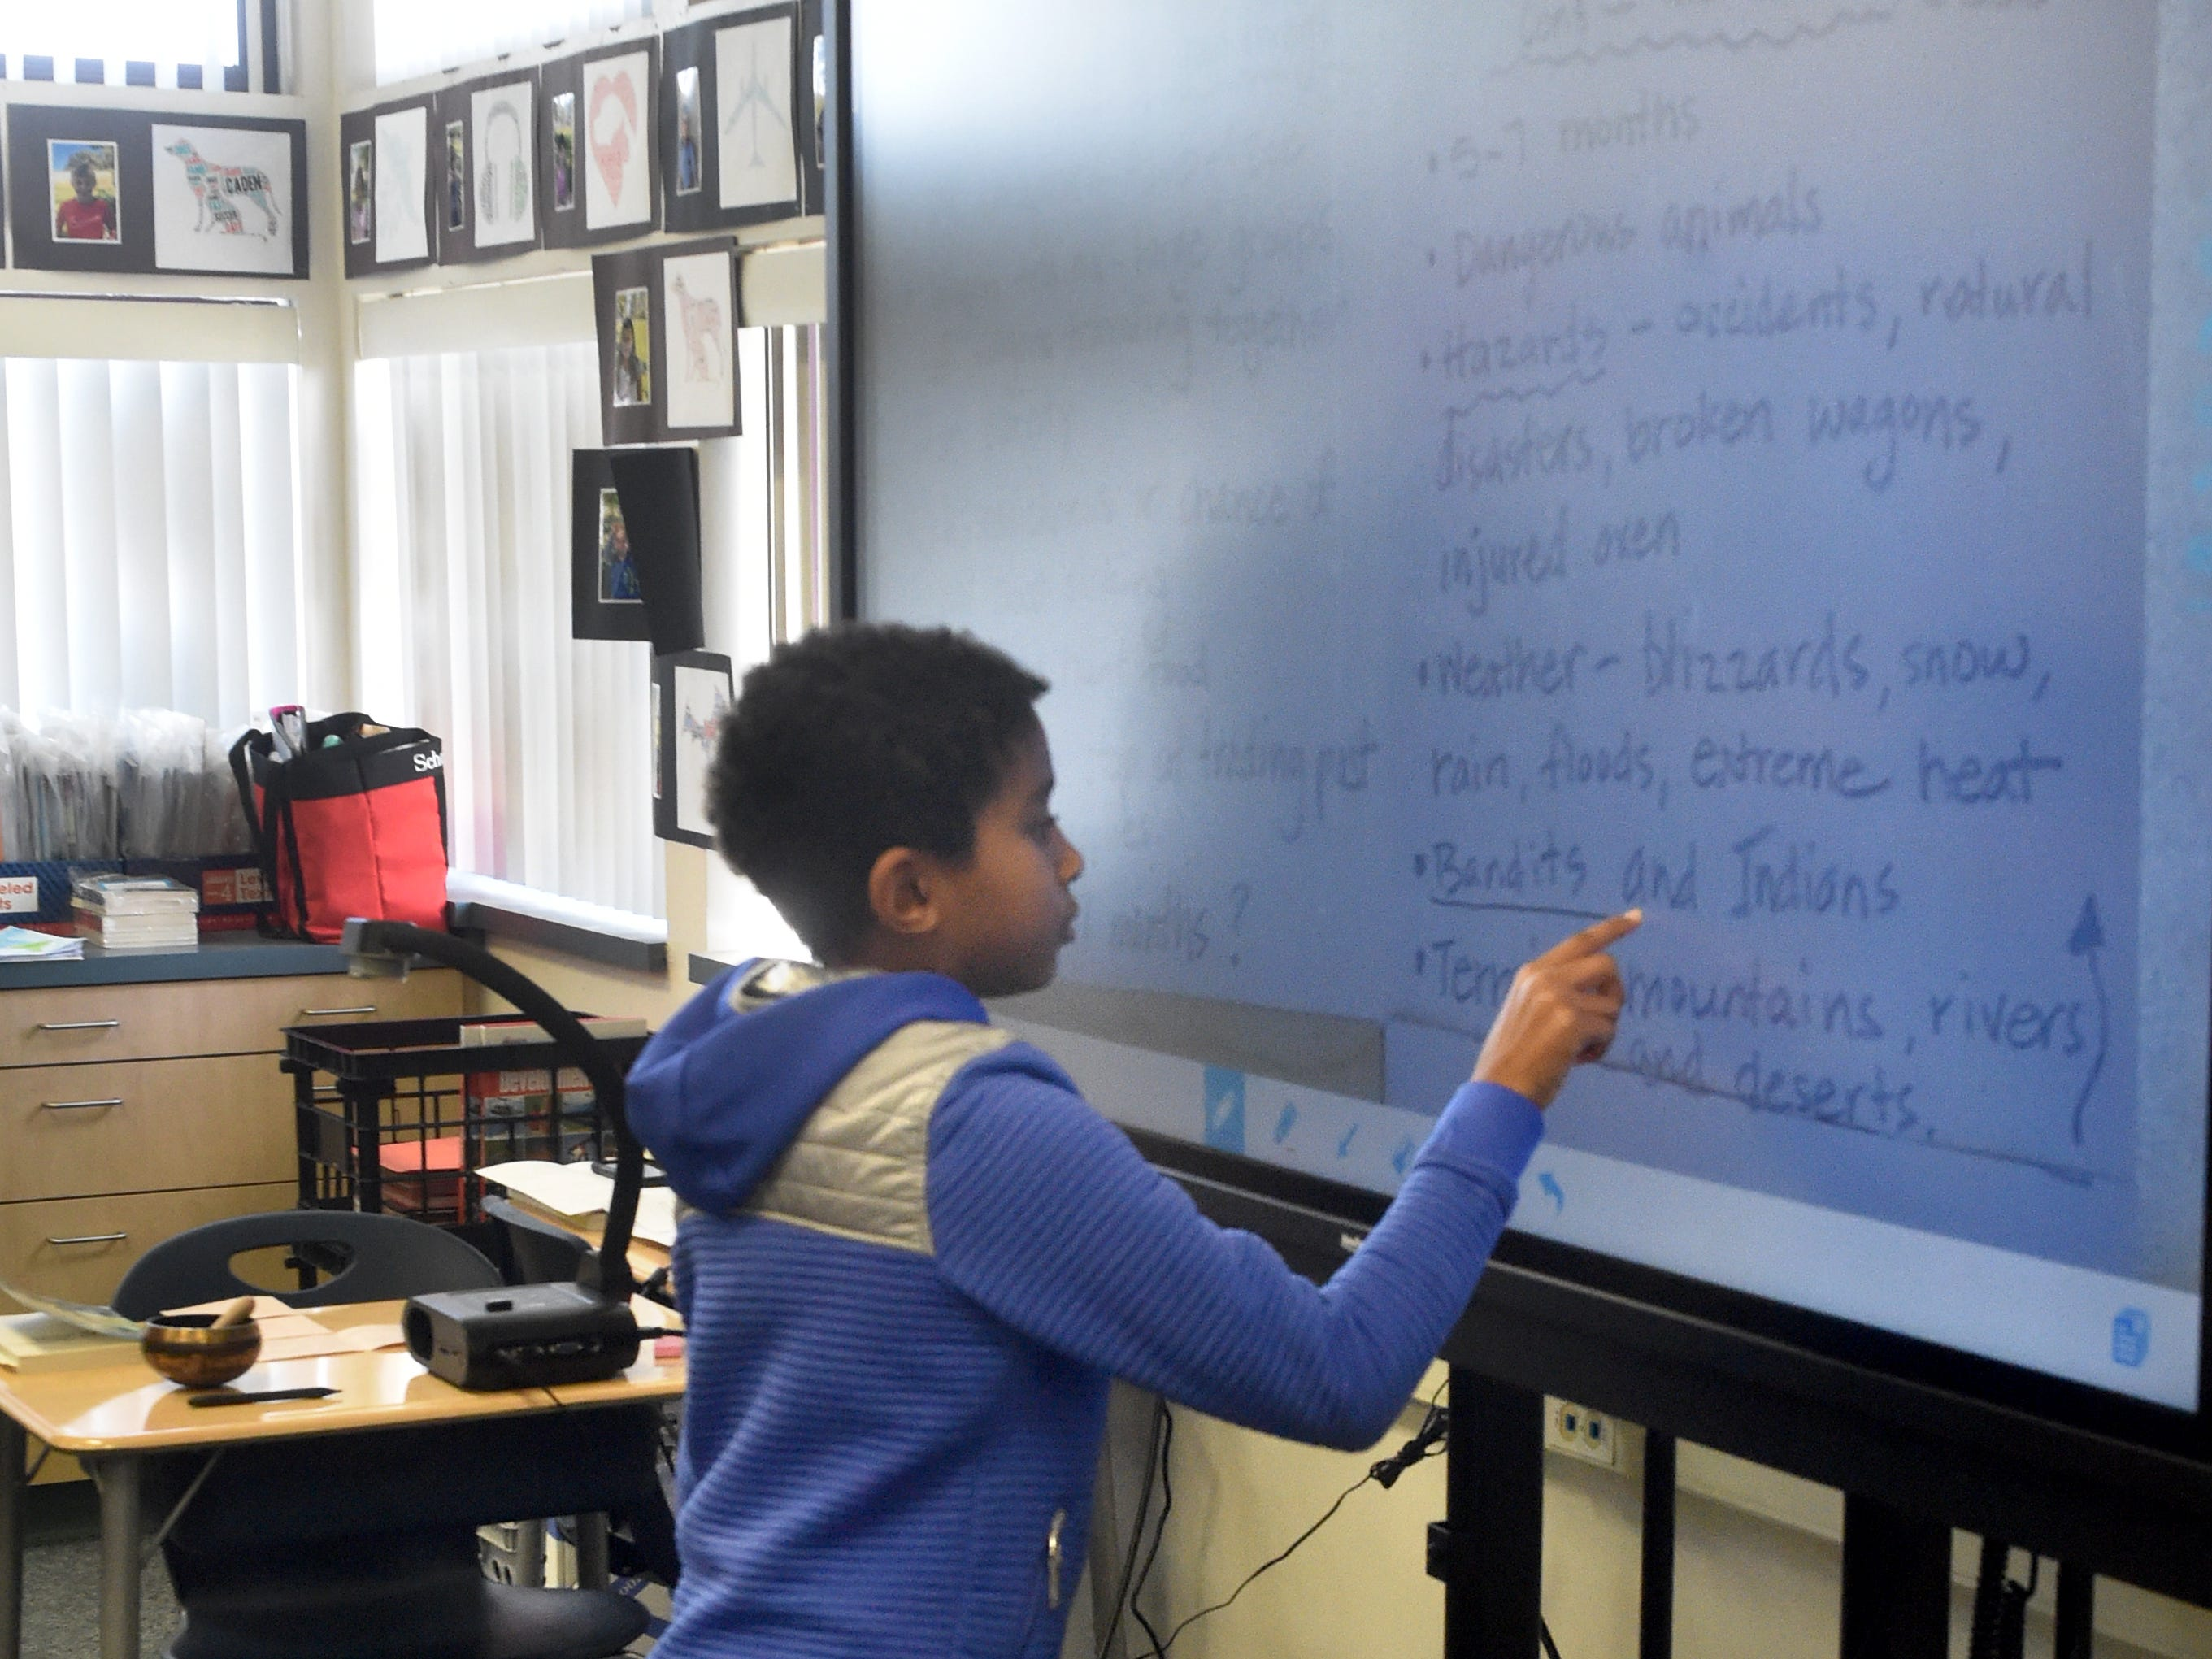 Jalen Oben, a fourth-grader at Mariposa School in Camarillo, uses a touch-screen display during class on a recent Monday. The Pleasant Valley School District is using funds from Measure C to purchase technology for the classrooms.